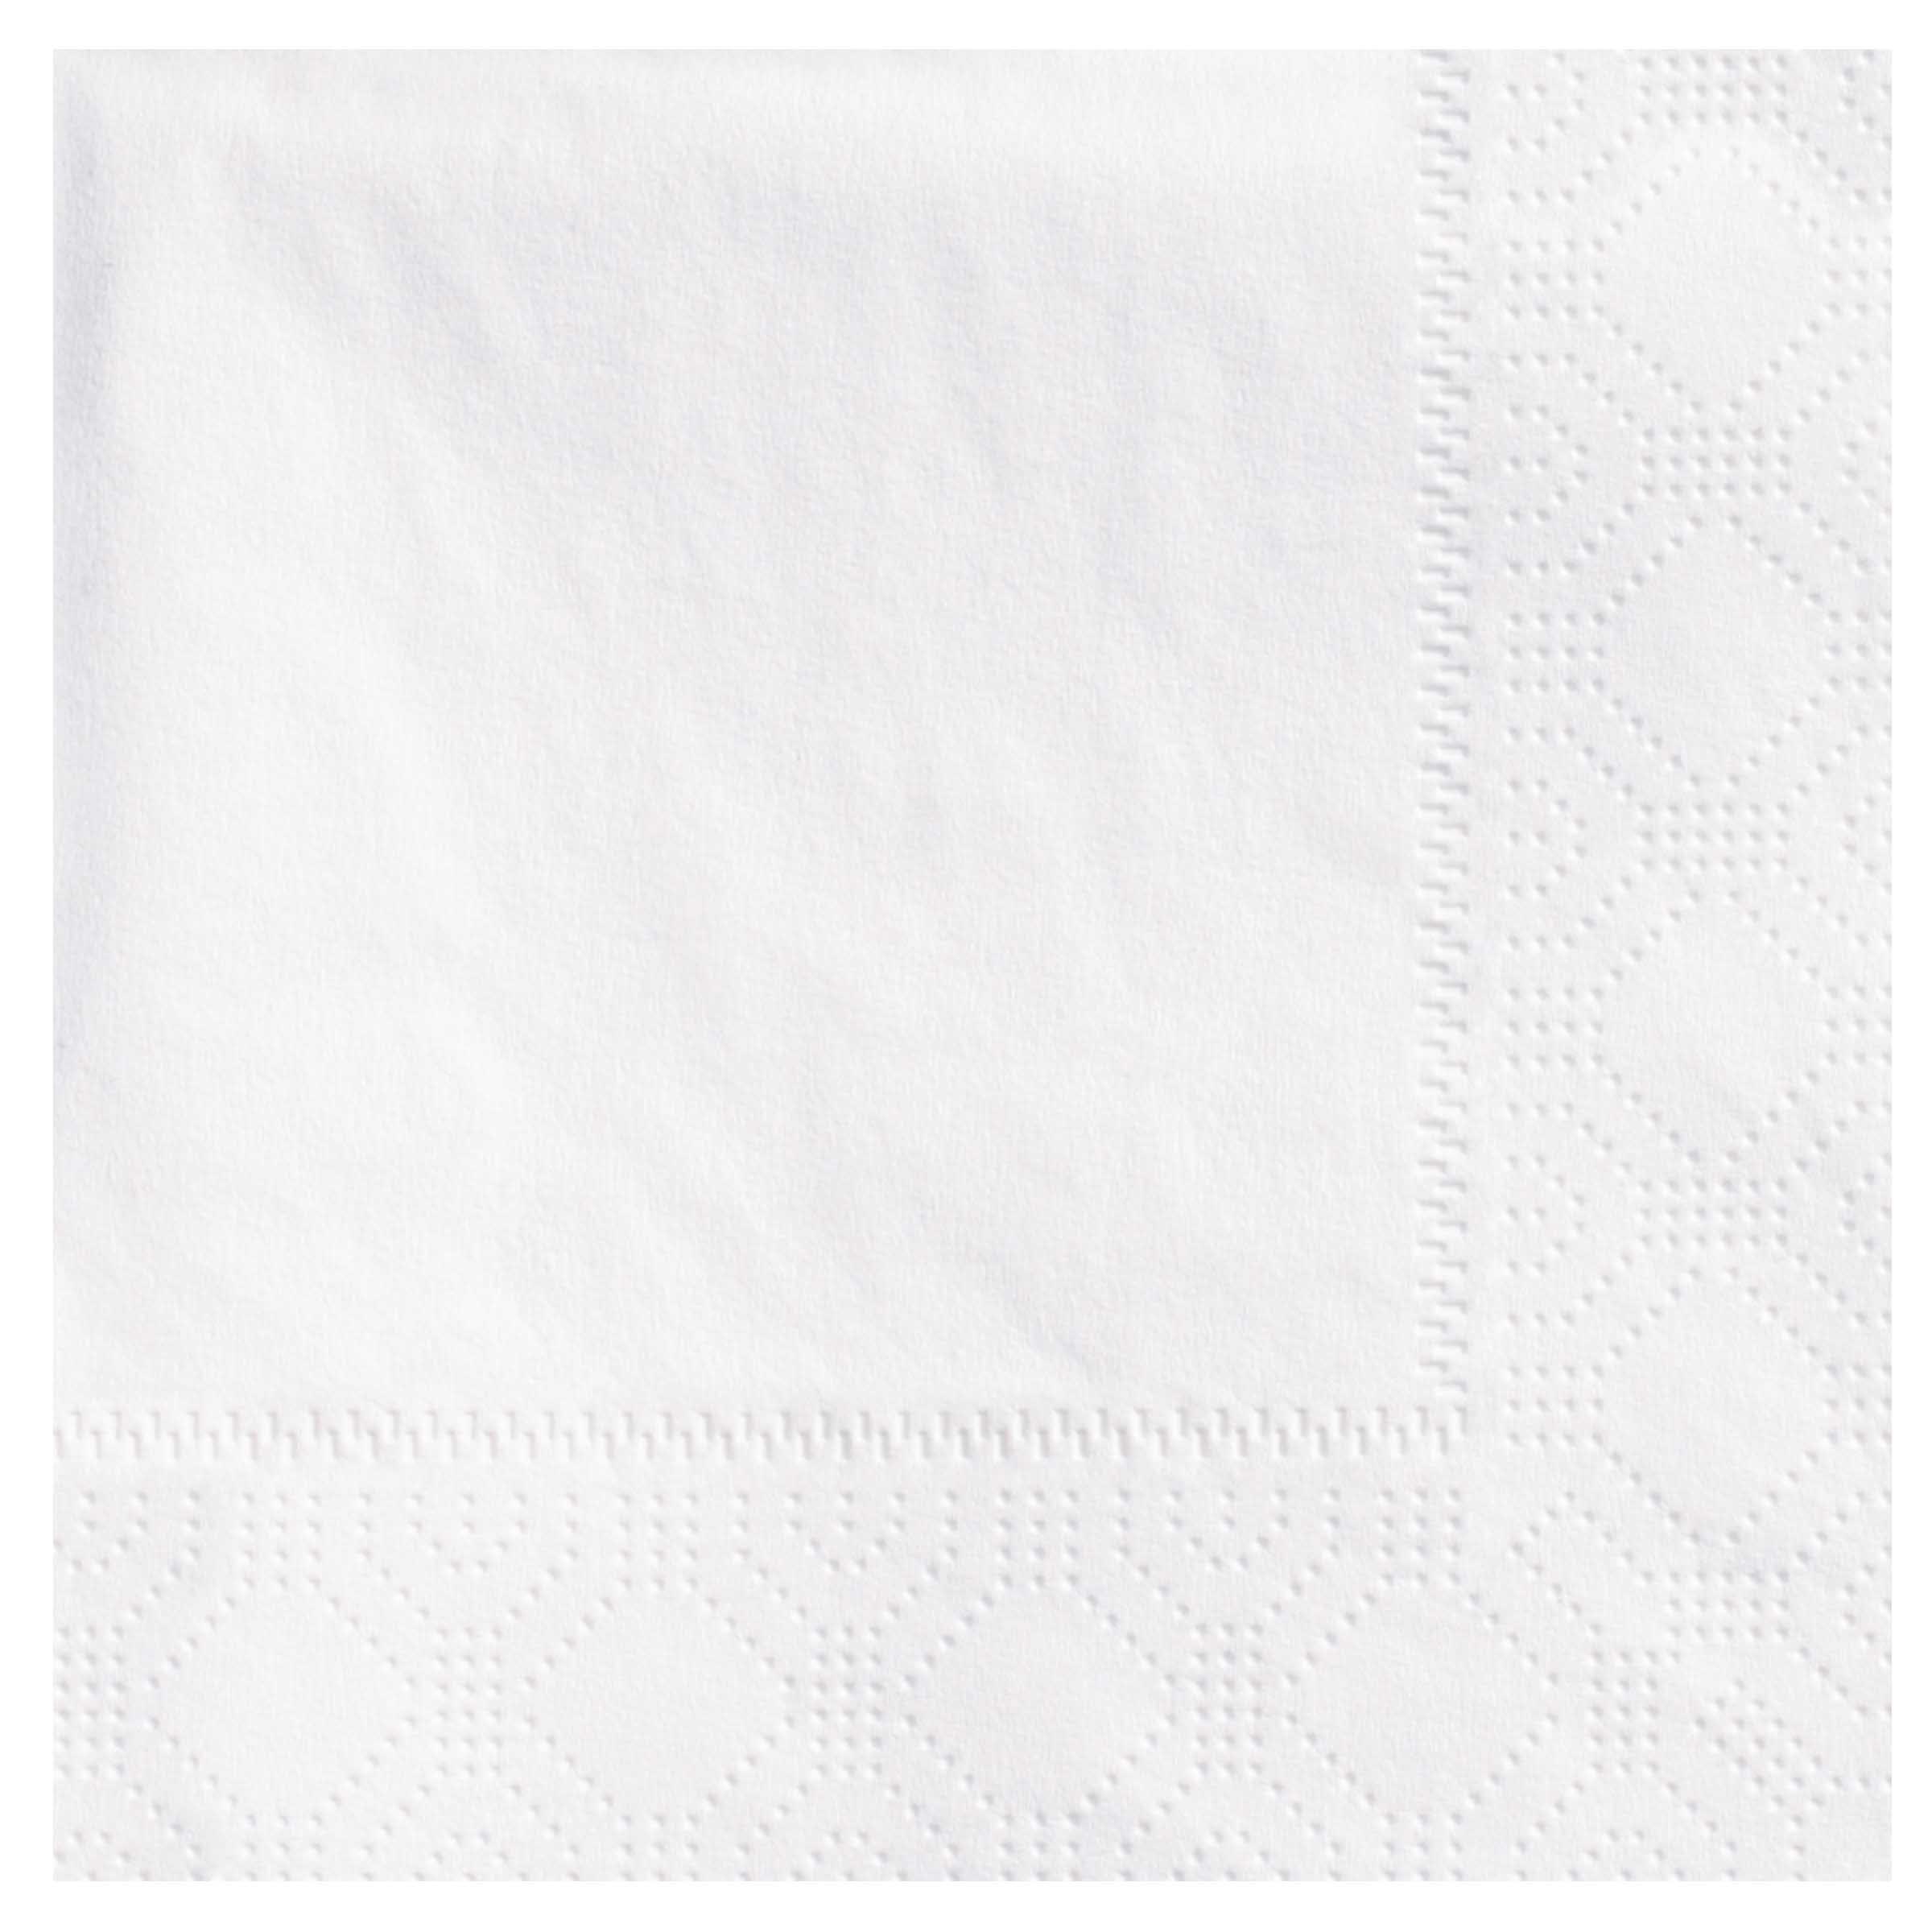 Hoffmaster Oak Leaf Embossed 1/4 Fold 2ply Beverage Napkin 180330